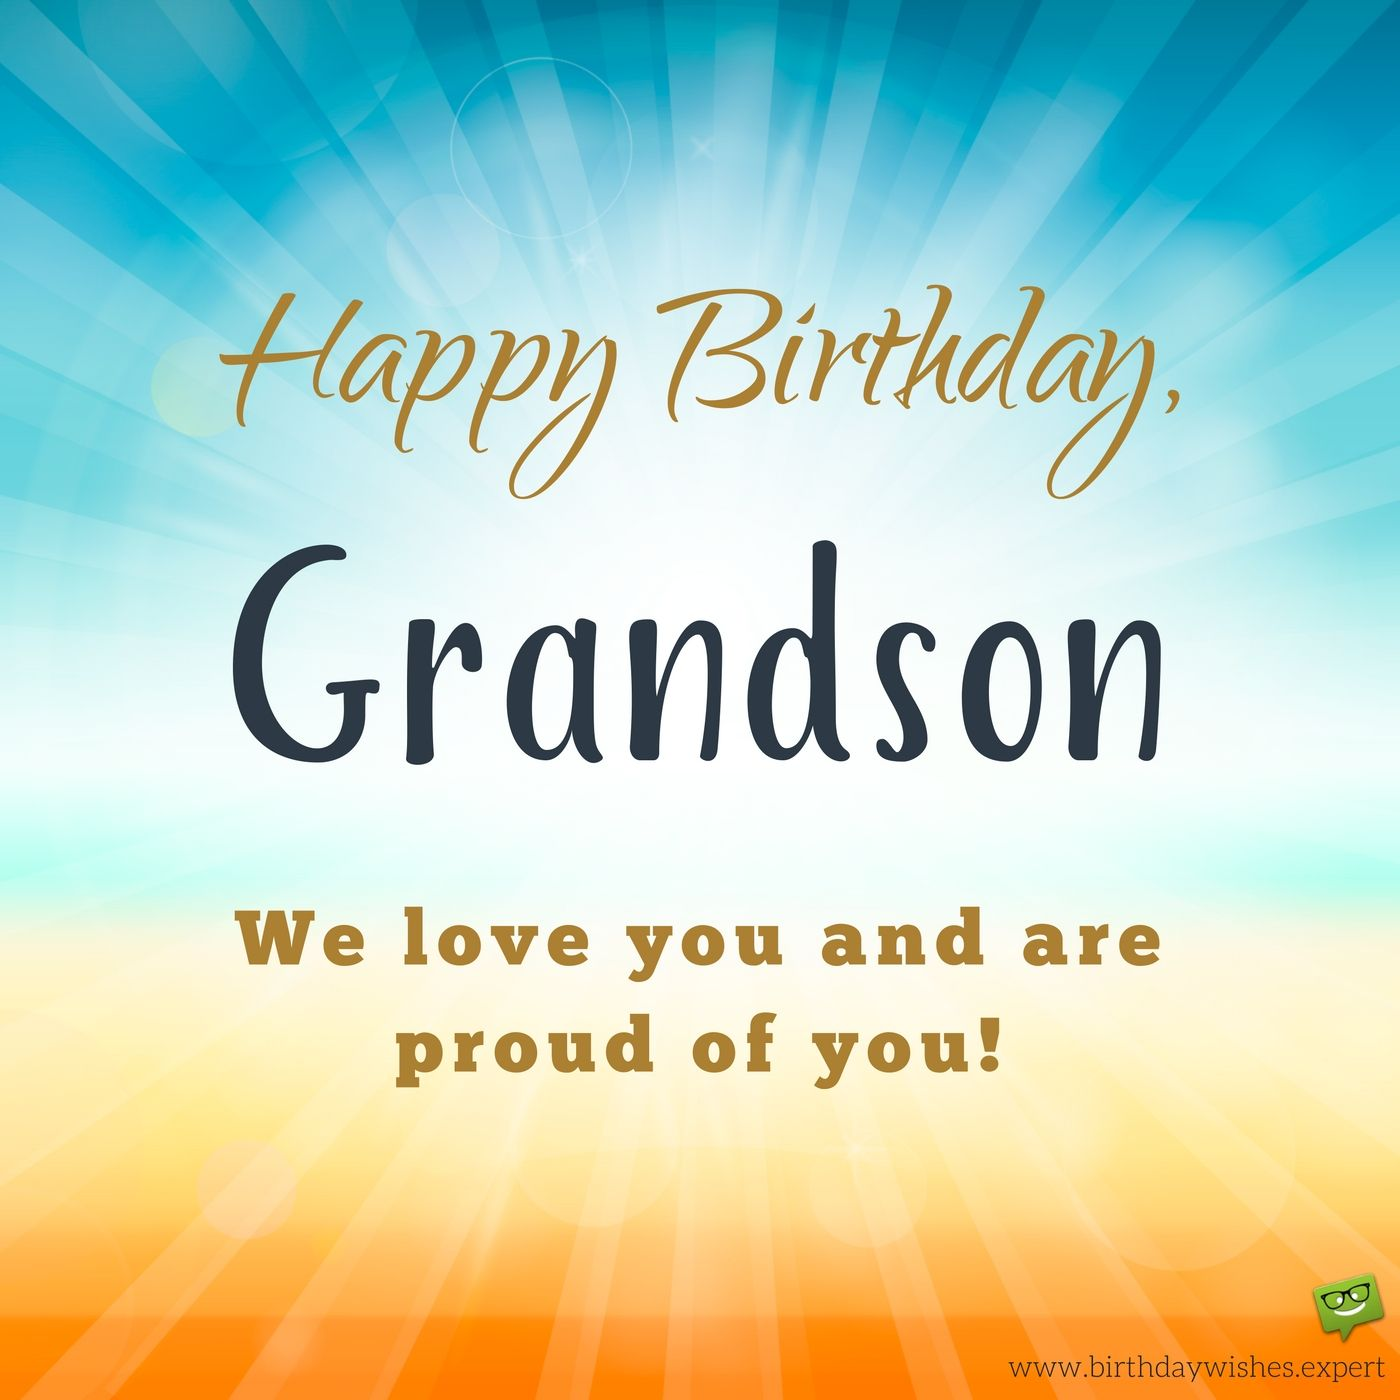 Happy Birthday Grandma Quotes From Grandson ~ From your hi tech grandma and grandpa birthday wishes for my grandson happy